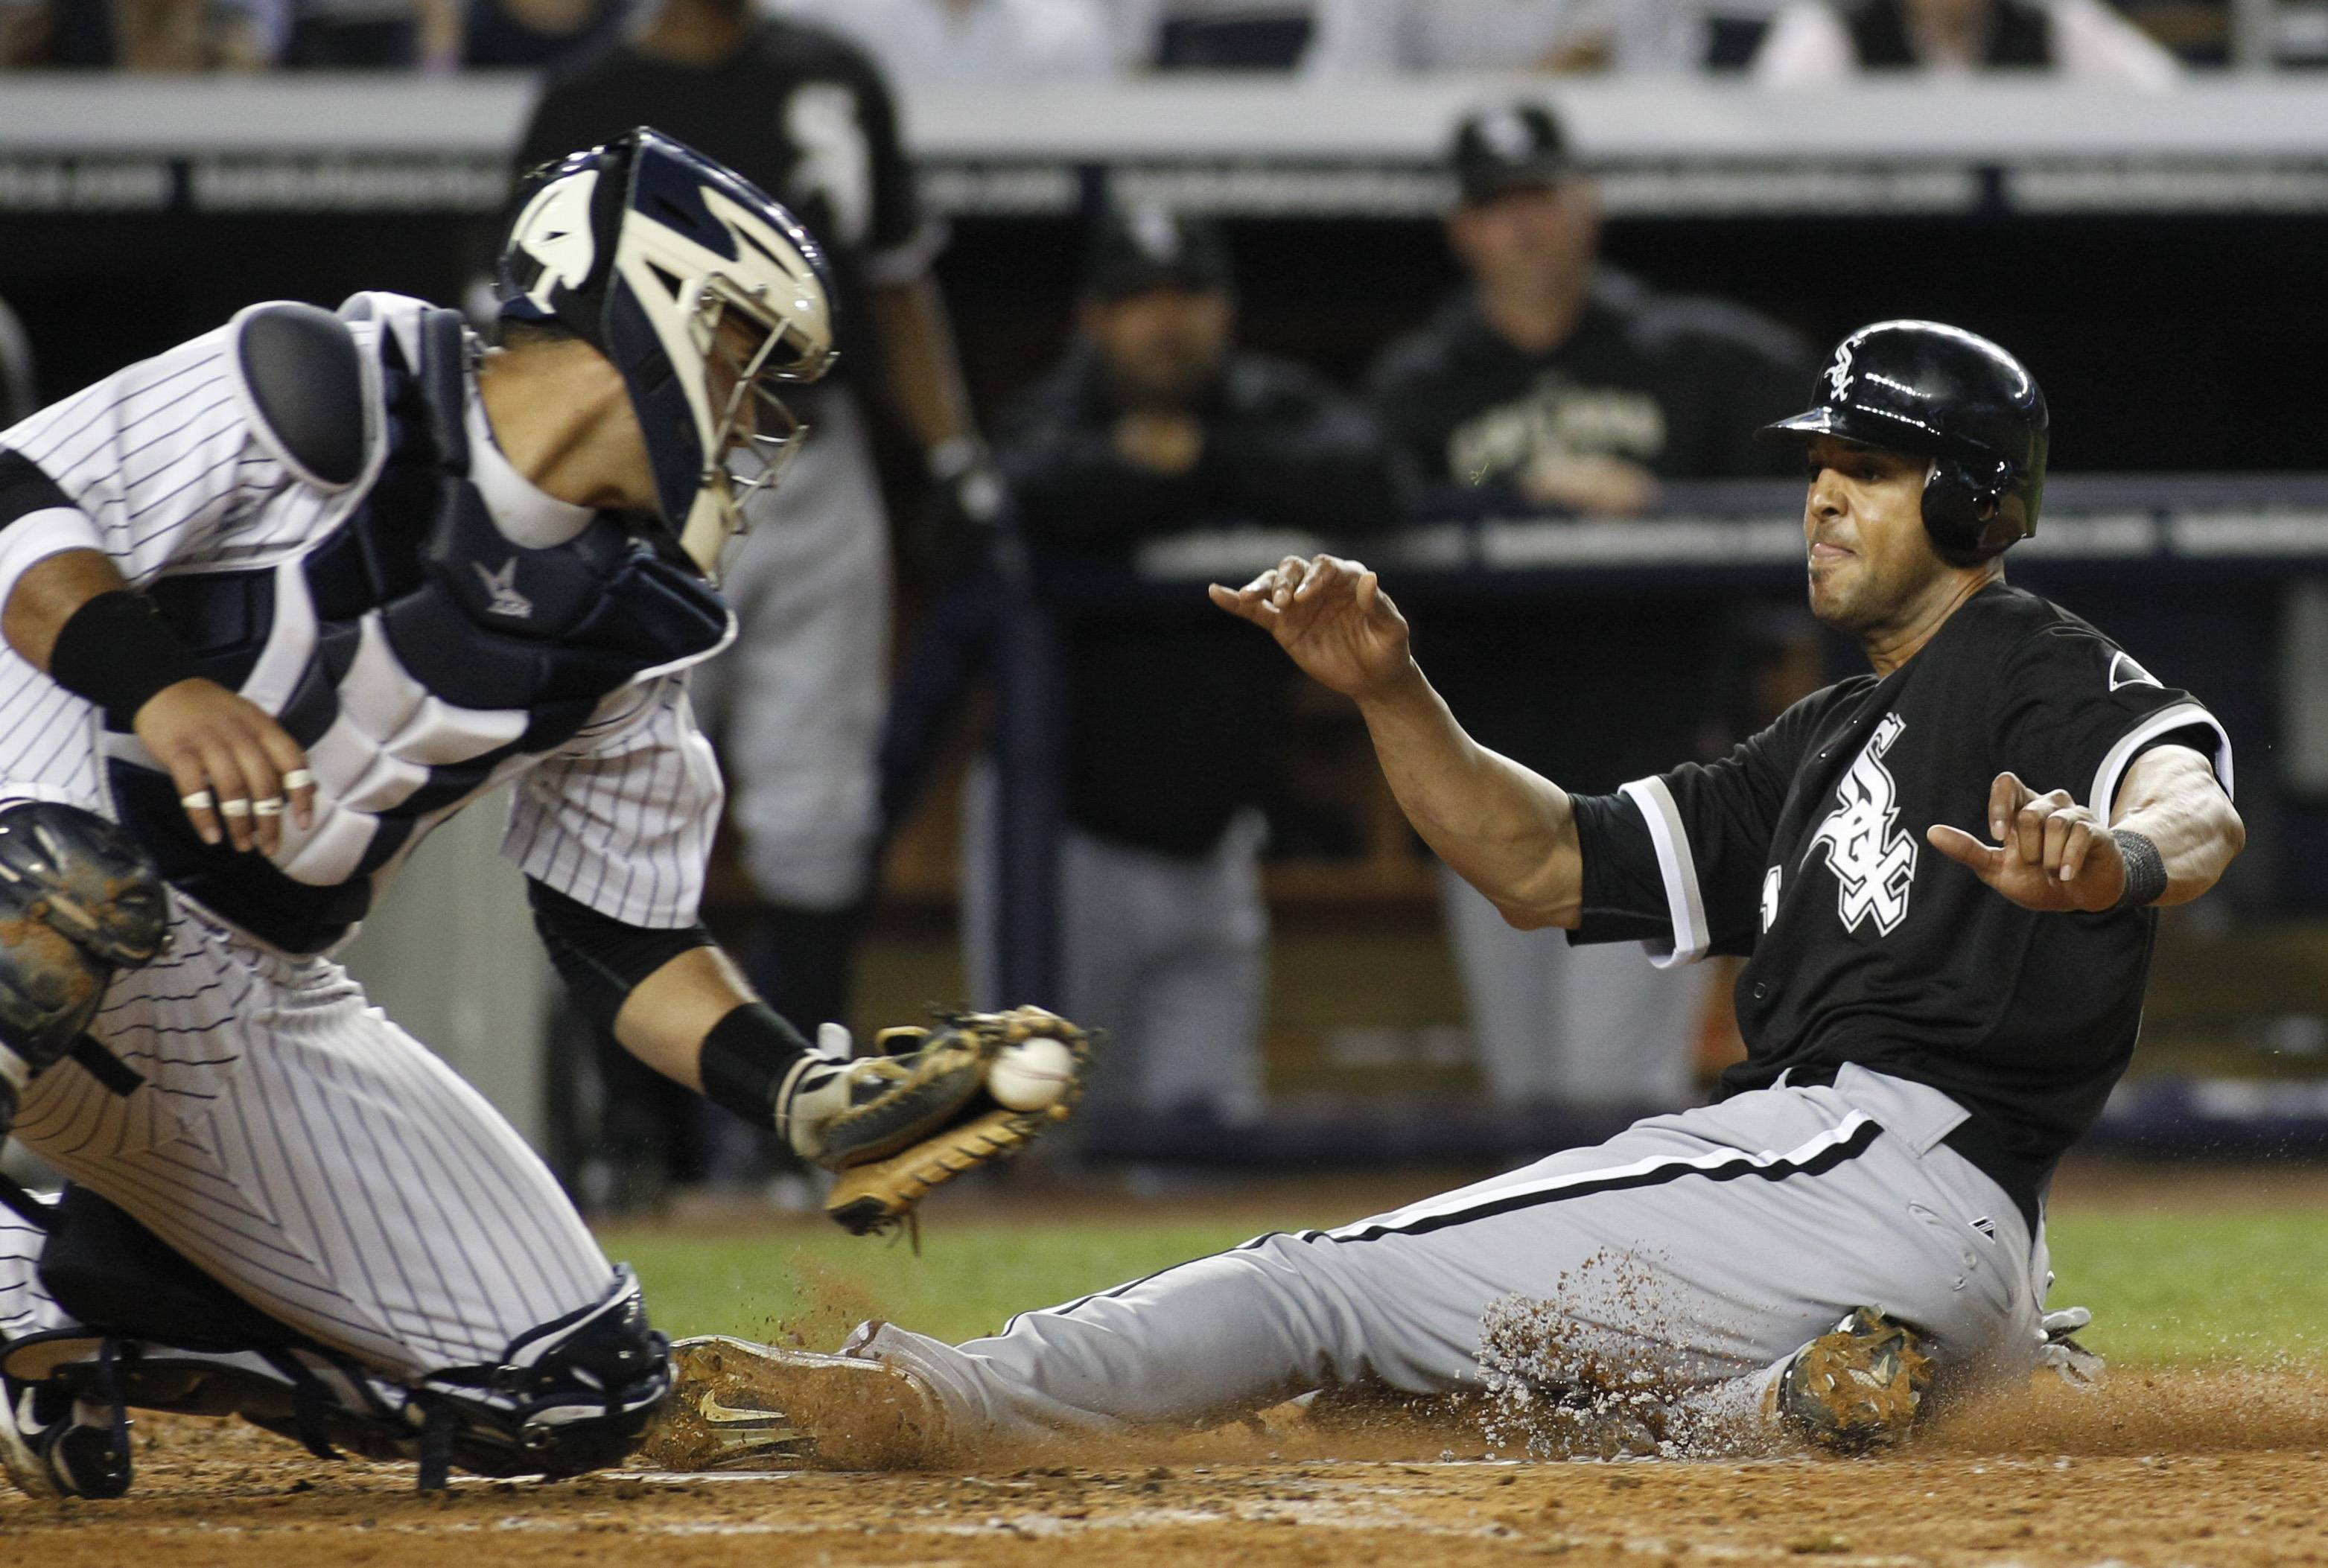 New York Yankees catcher Gustavo Molina looks to make the tag as Chicago White Sox's Alex Rios scores in the fifth inning at Yankee Stadium on Tuesday.